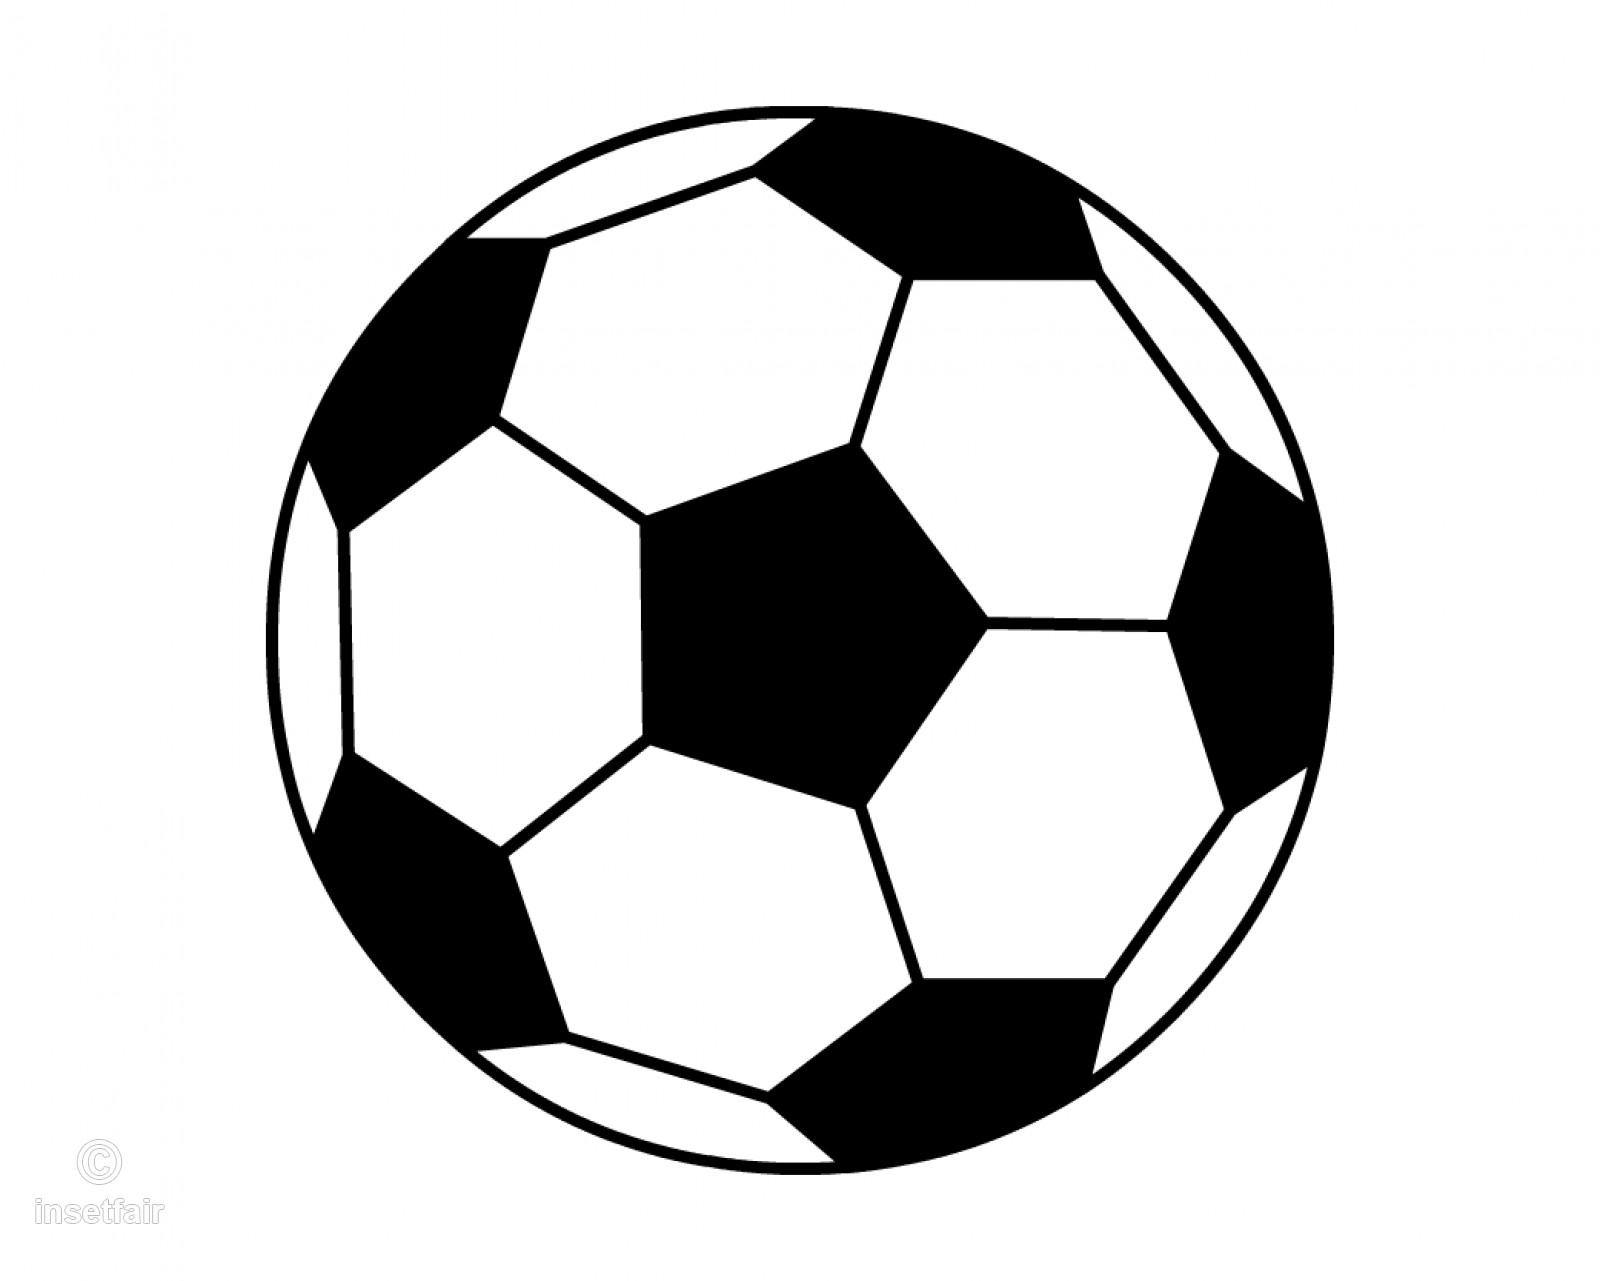 Black and white football clipart Vector PNG image.